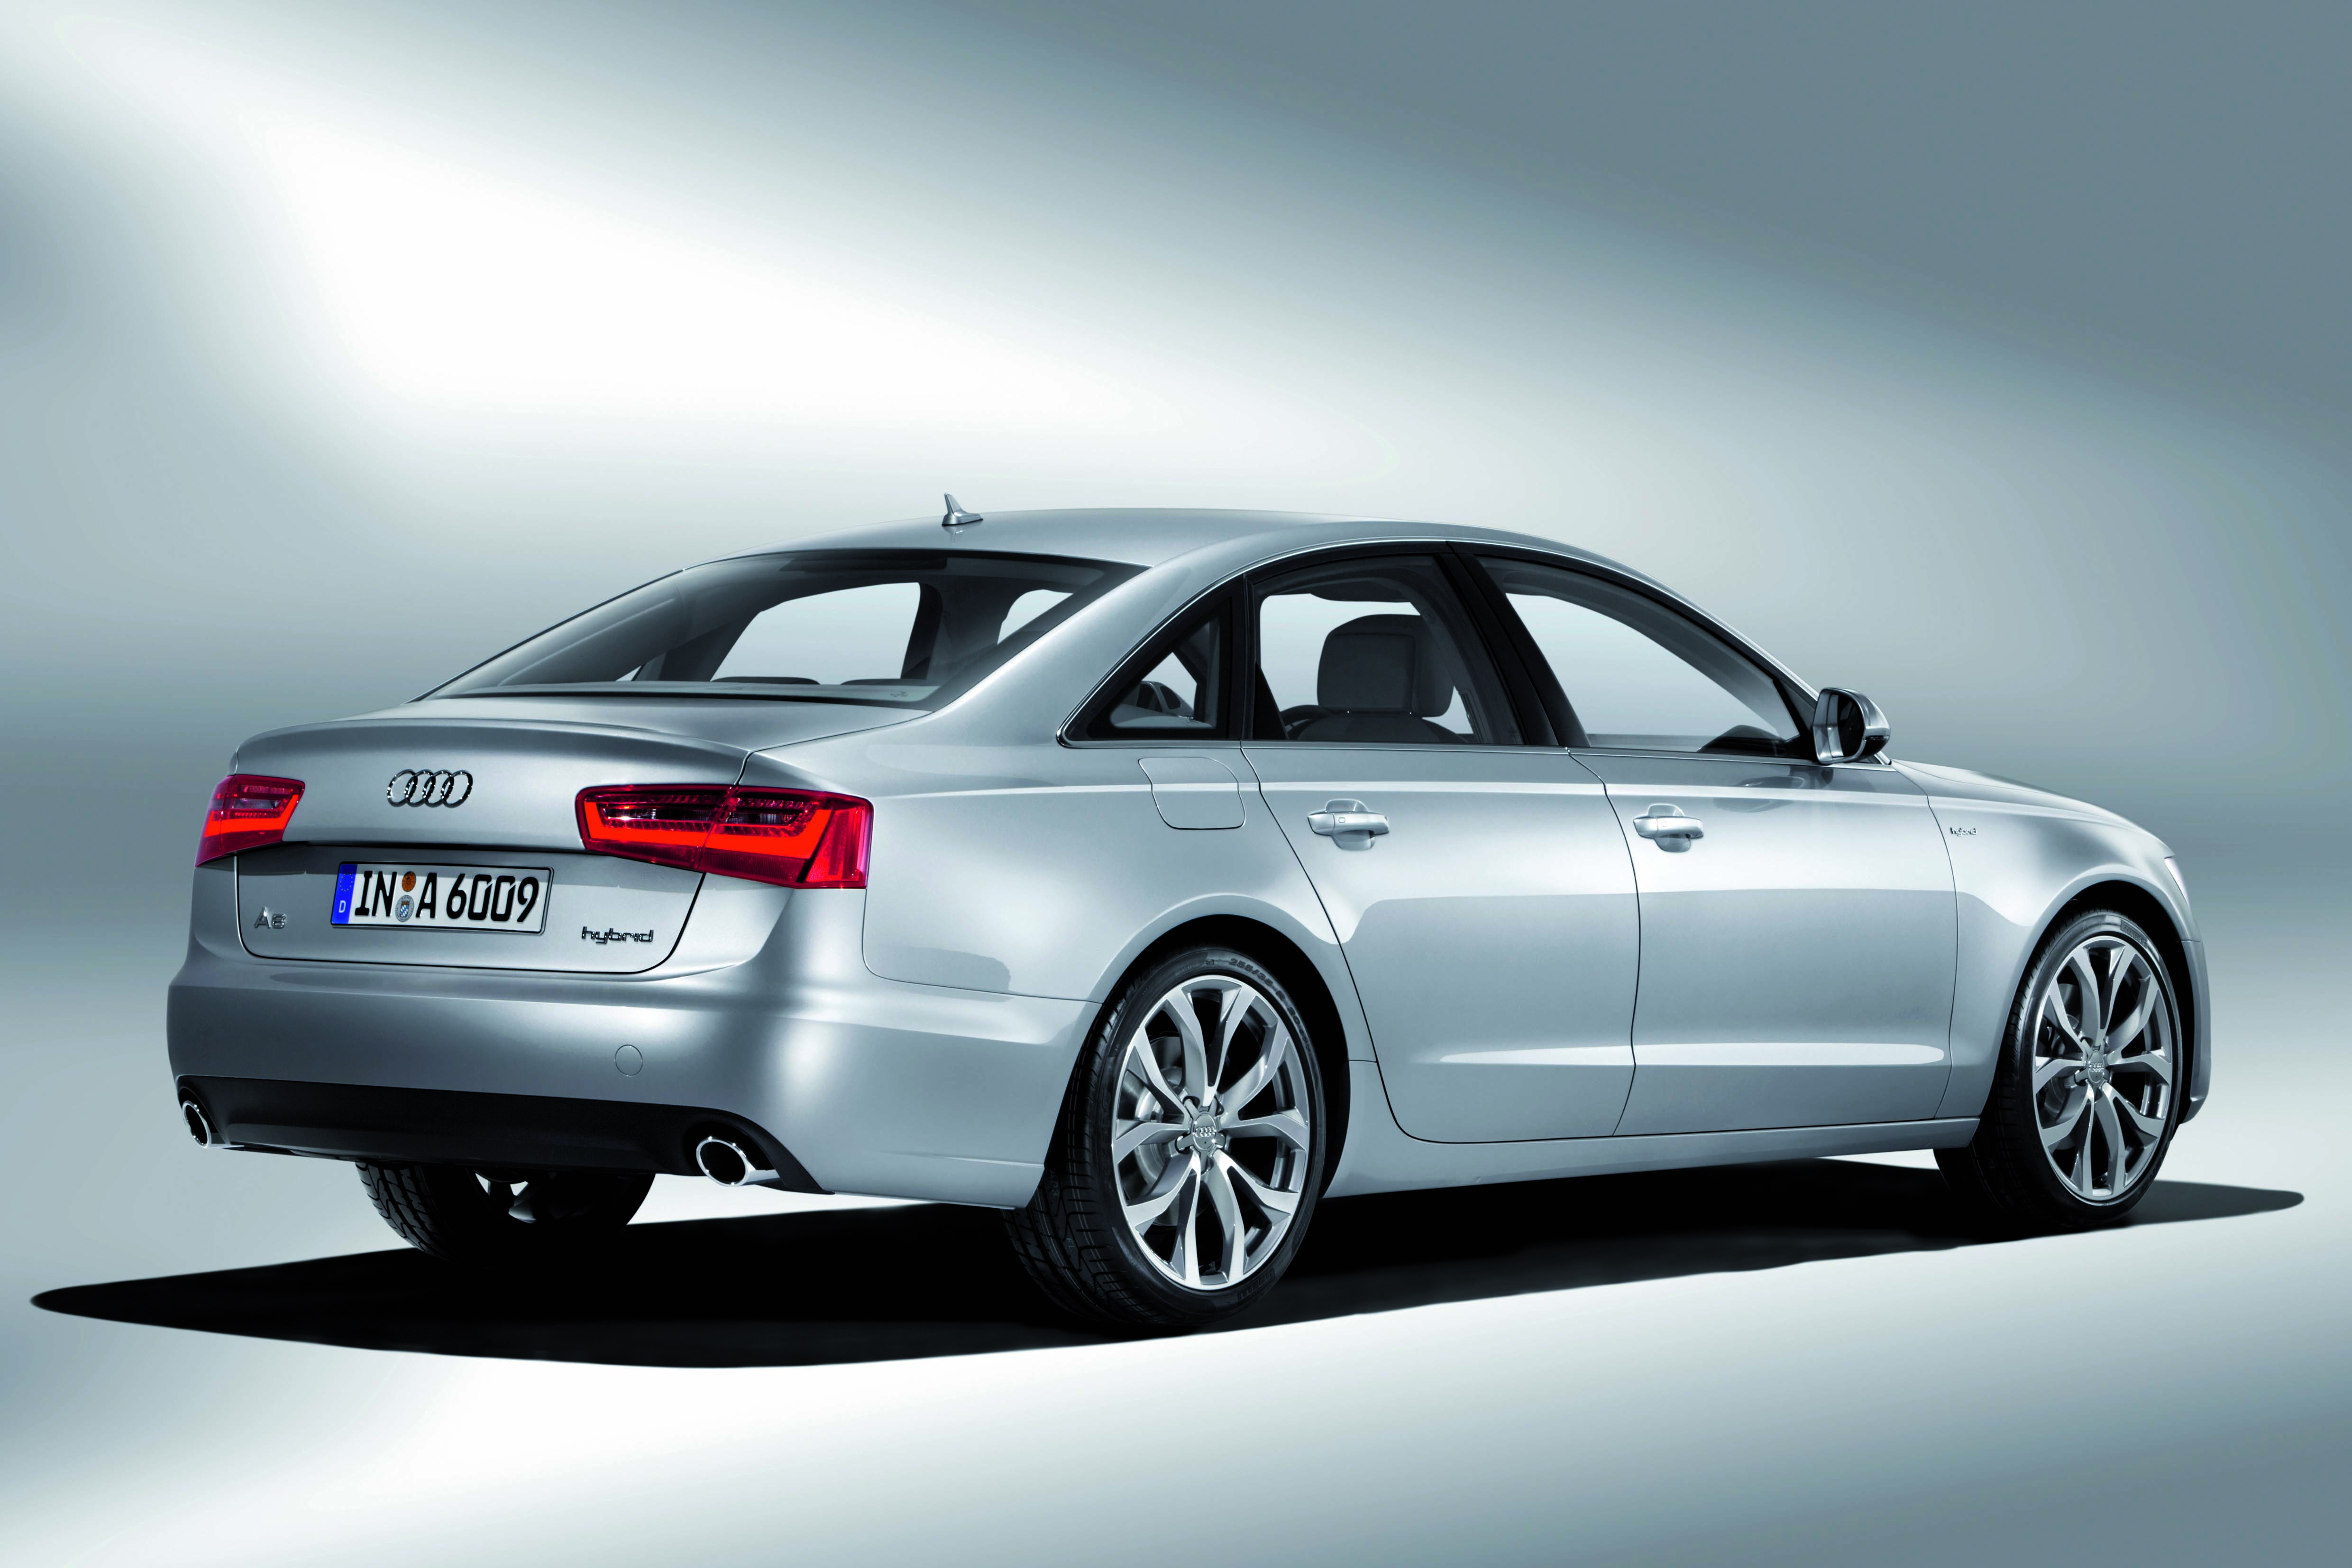 la nouvelle audi a6 hybrid en d tail. Black Bedroom Furniture Sets. Home Design Ideas